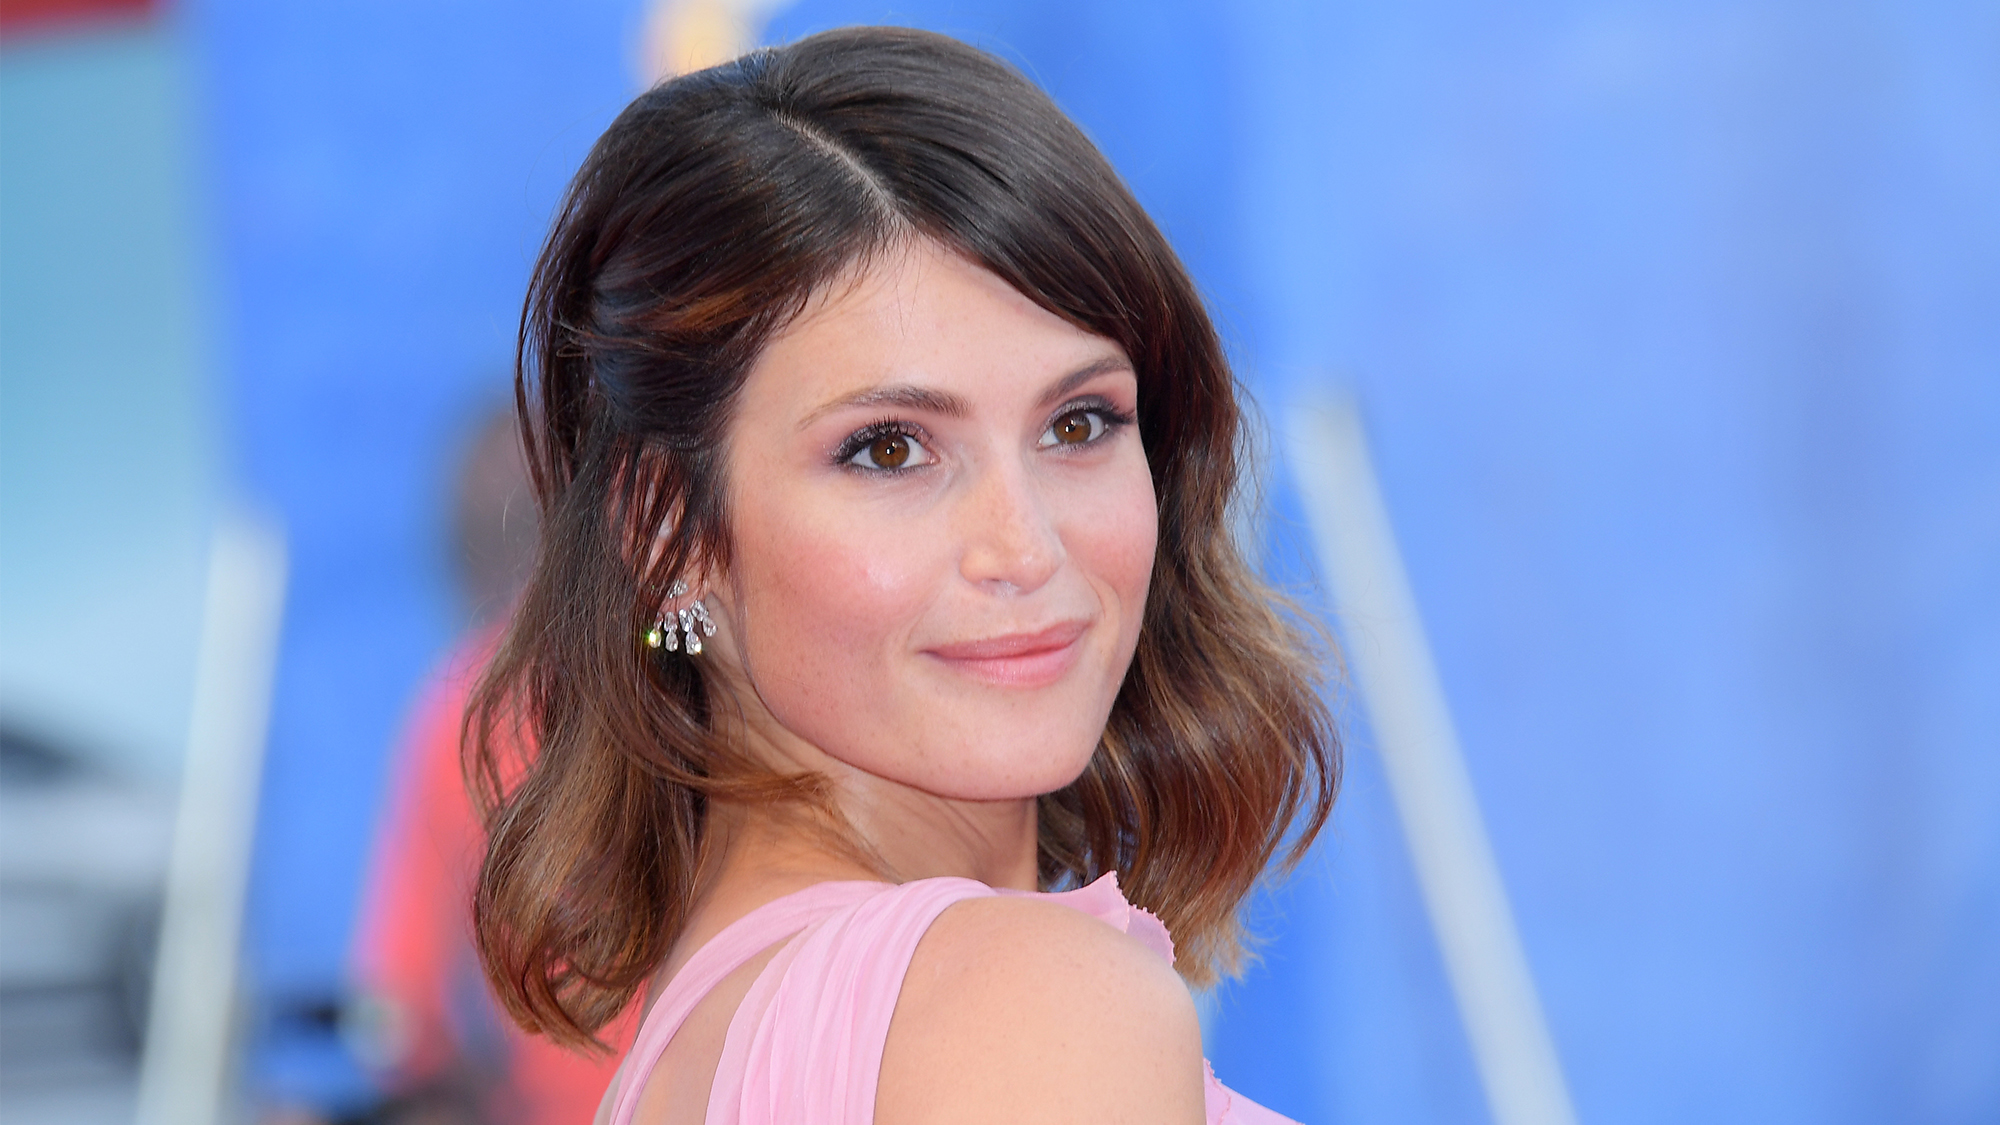 Gemma Arterton spills her beauty secrets Gemma Arterton spills her beauty secrets new photo